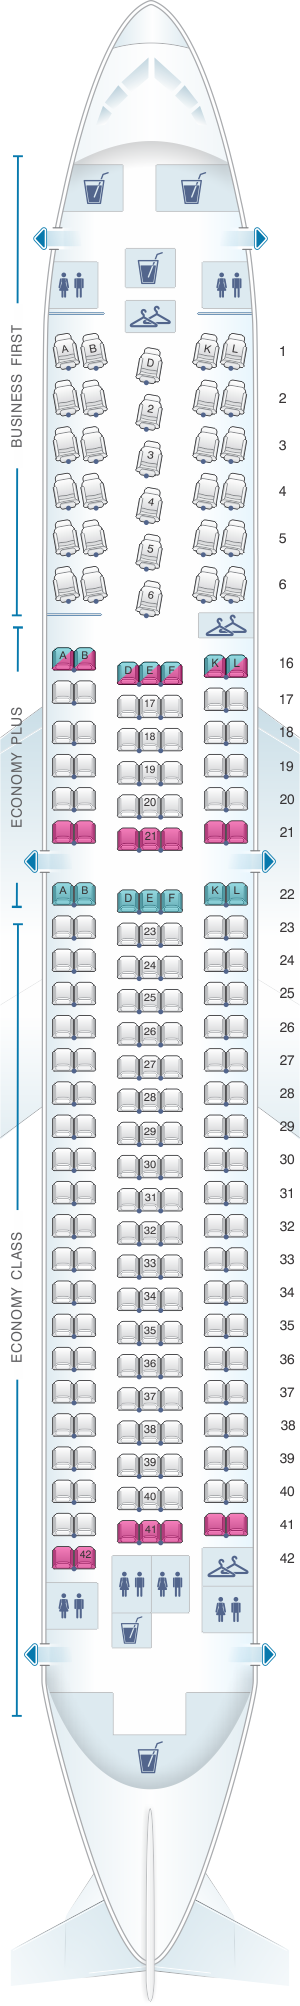 Seat map for United Airlines Boeing B767 300ER - version 2